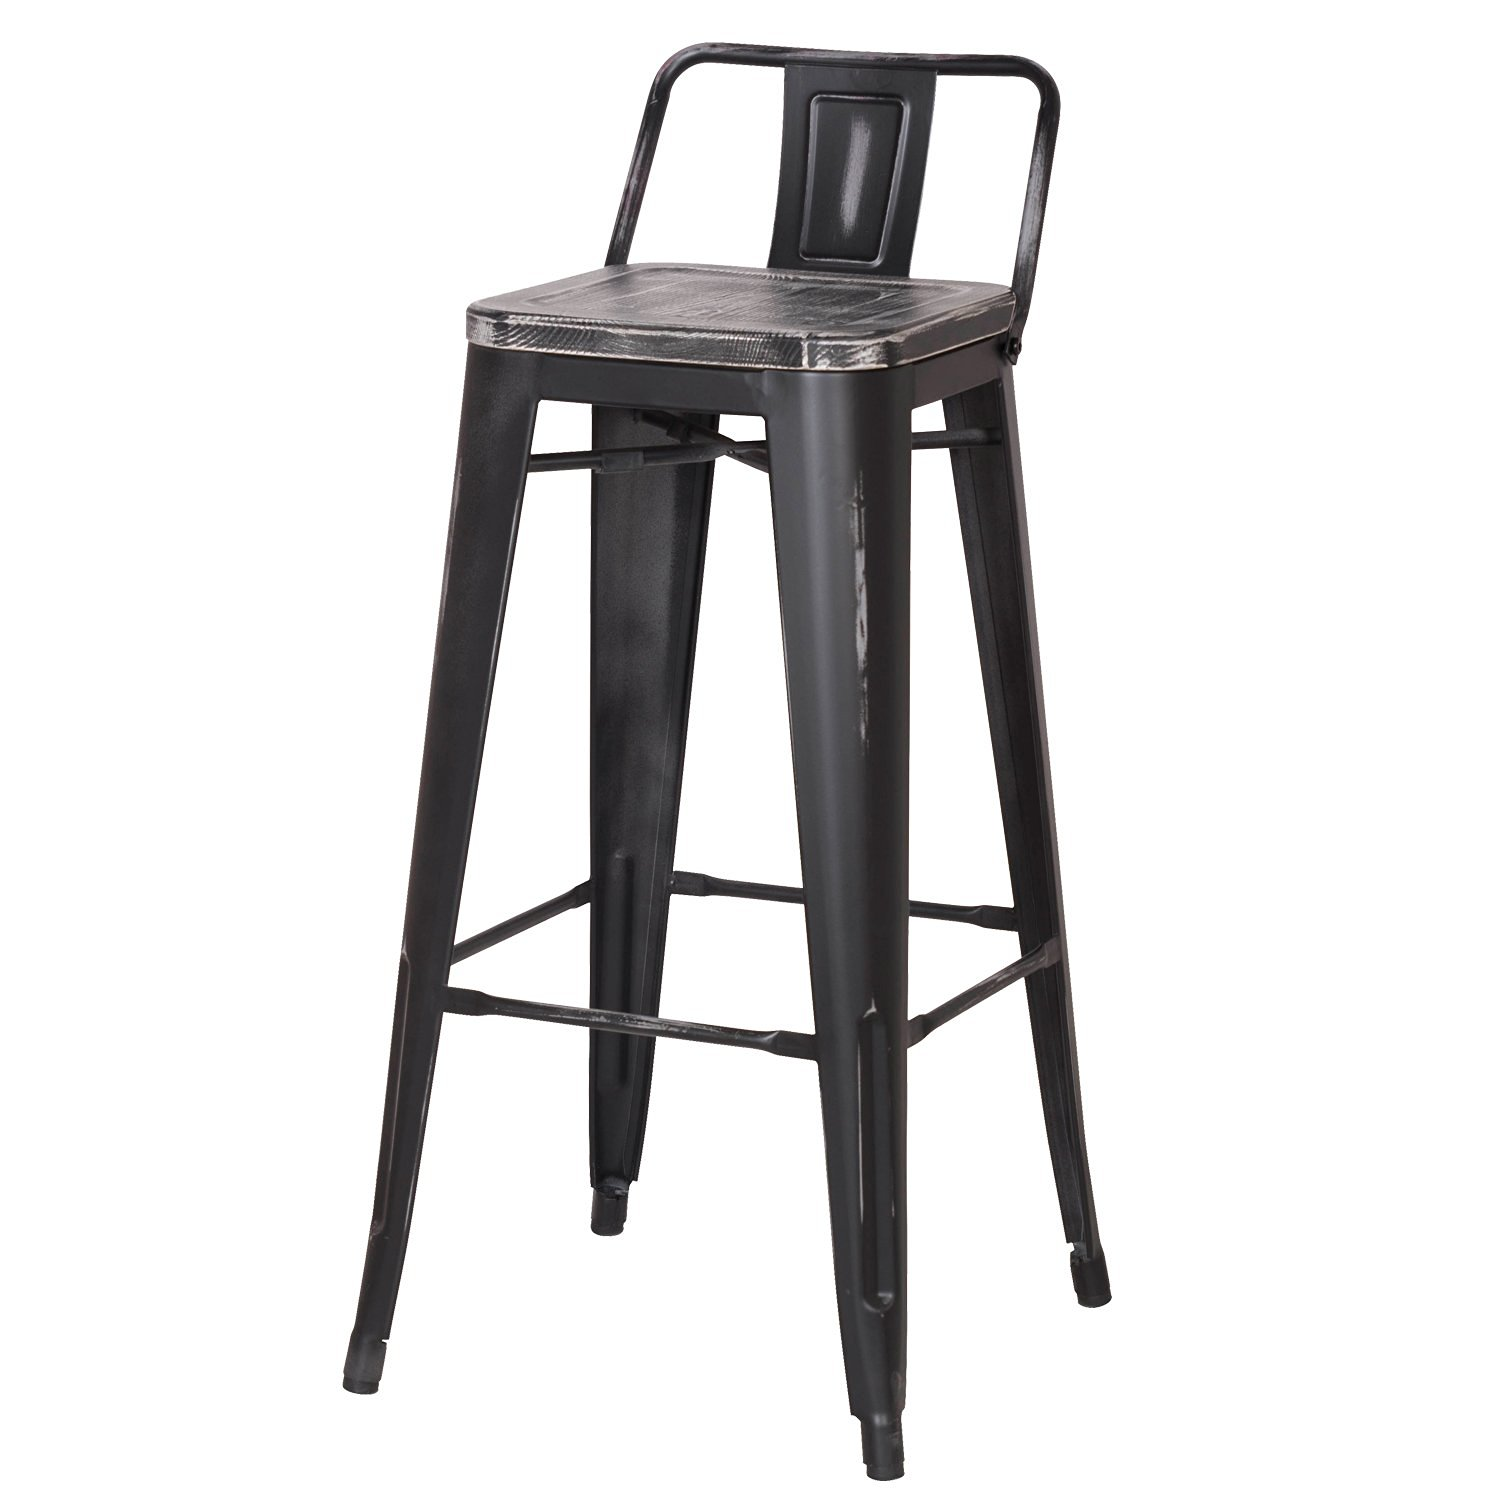 Decenthome Distresed Black Metal Bar Stools With Dark Wooden Seat